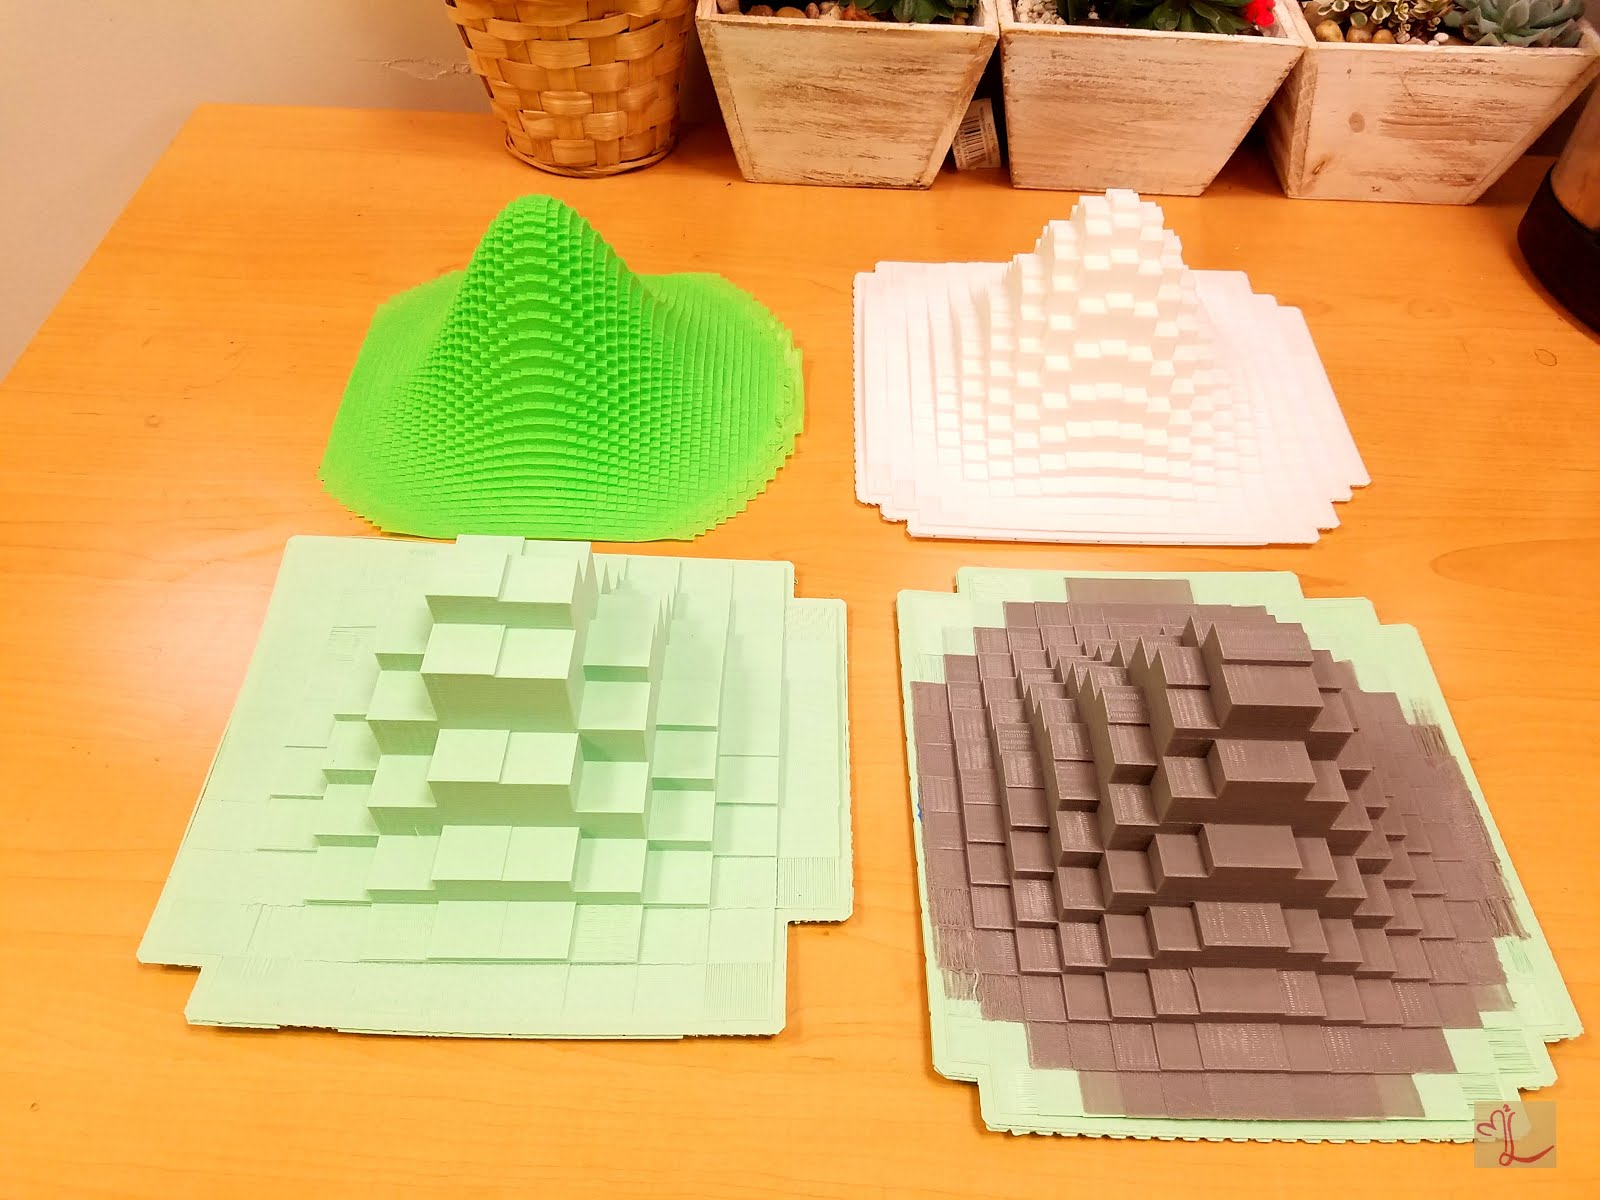 Color printing gmu - This Code Was Created By Mae Markowski In Mathematics Through 3d Printing Taught By Dr Evelyn Sander In Spring 2016 And Printed At The Math Makerlab